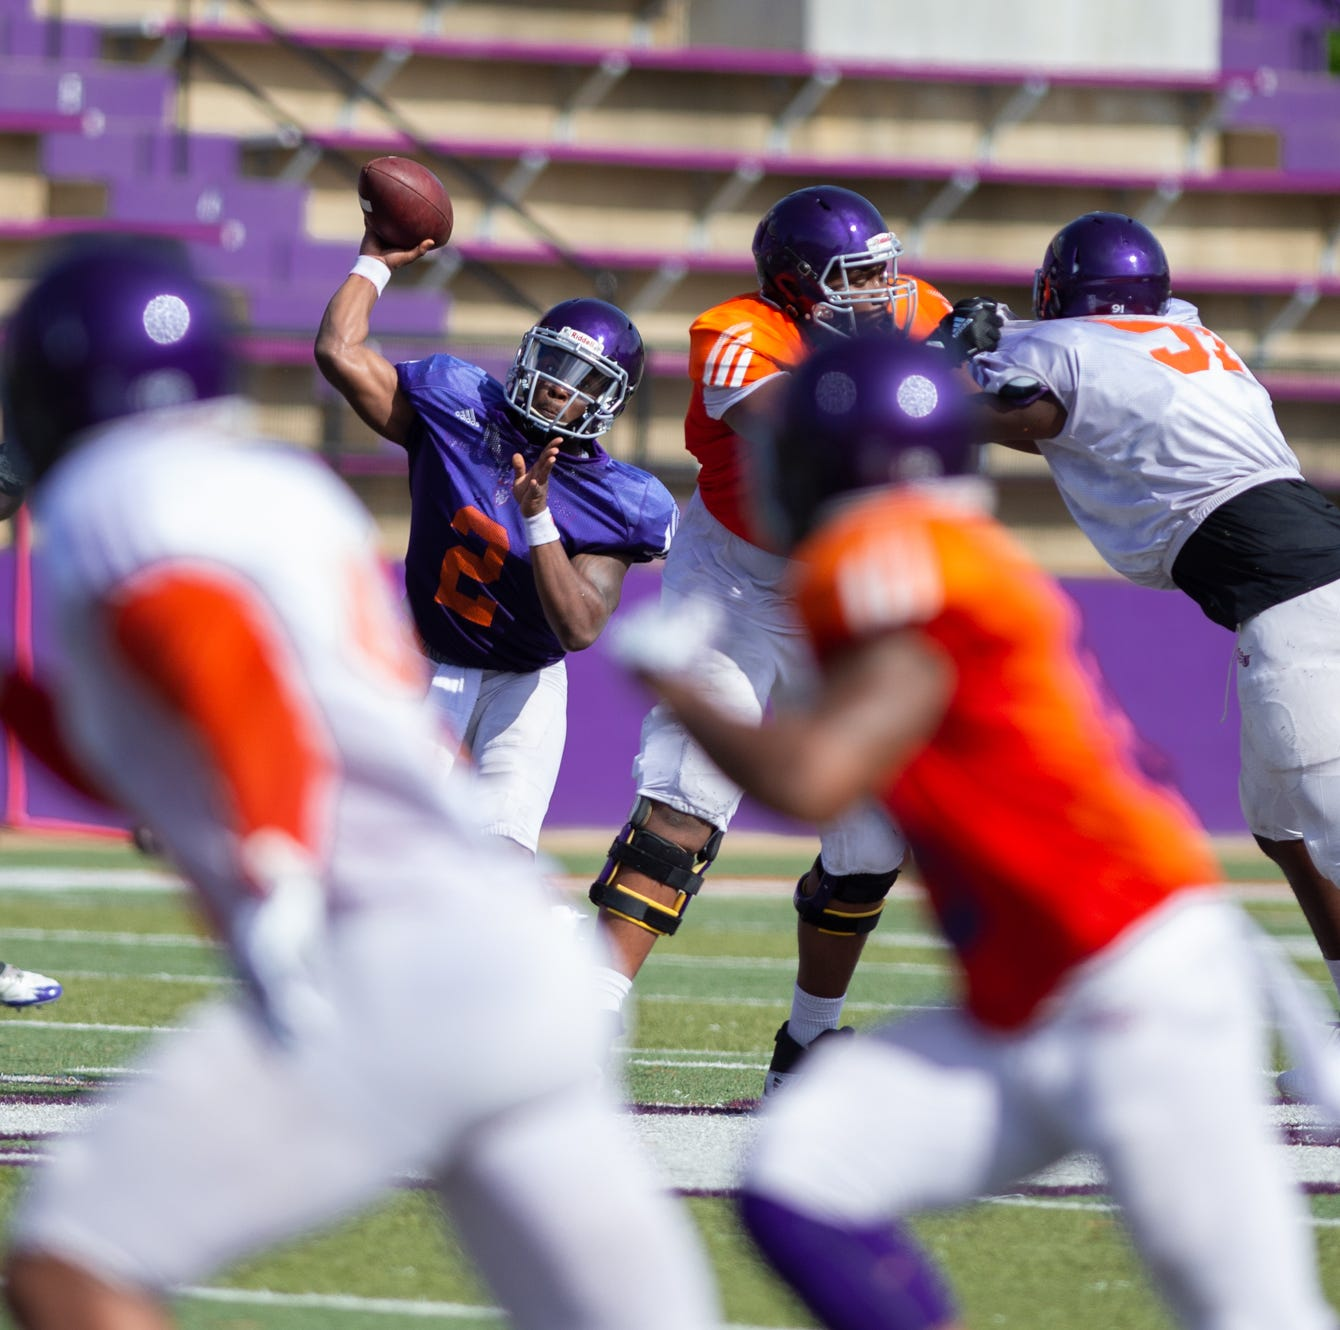 Northwestern State quarterbacks have big day in scrimmage